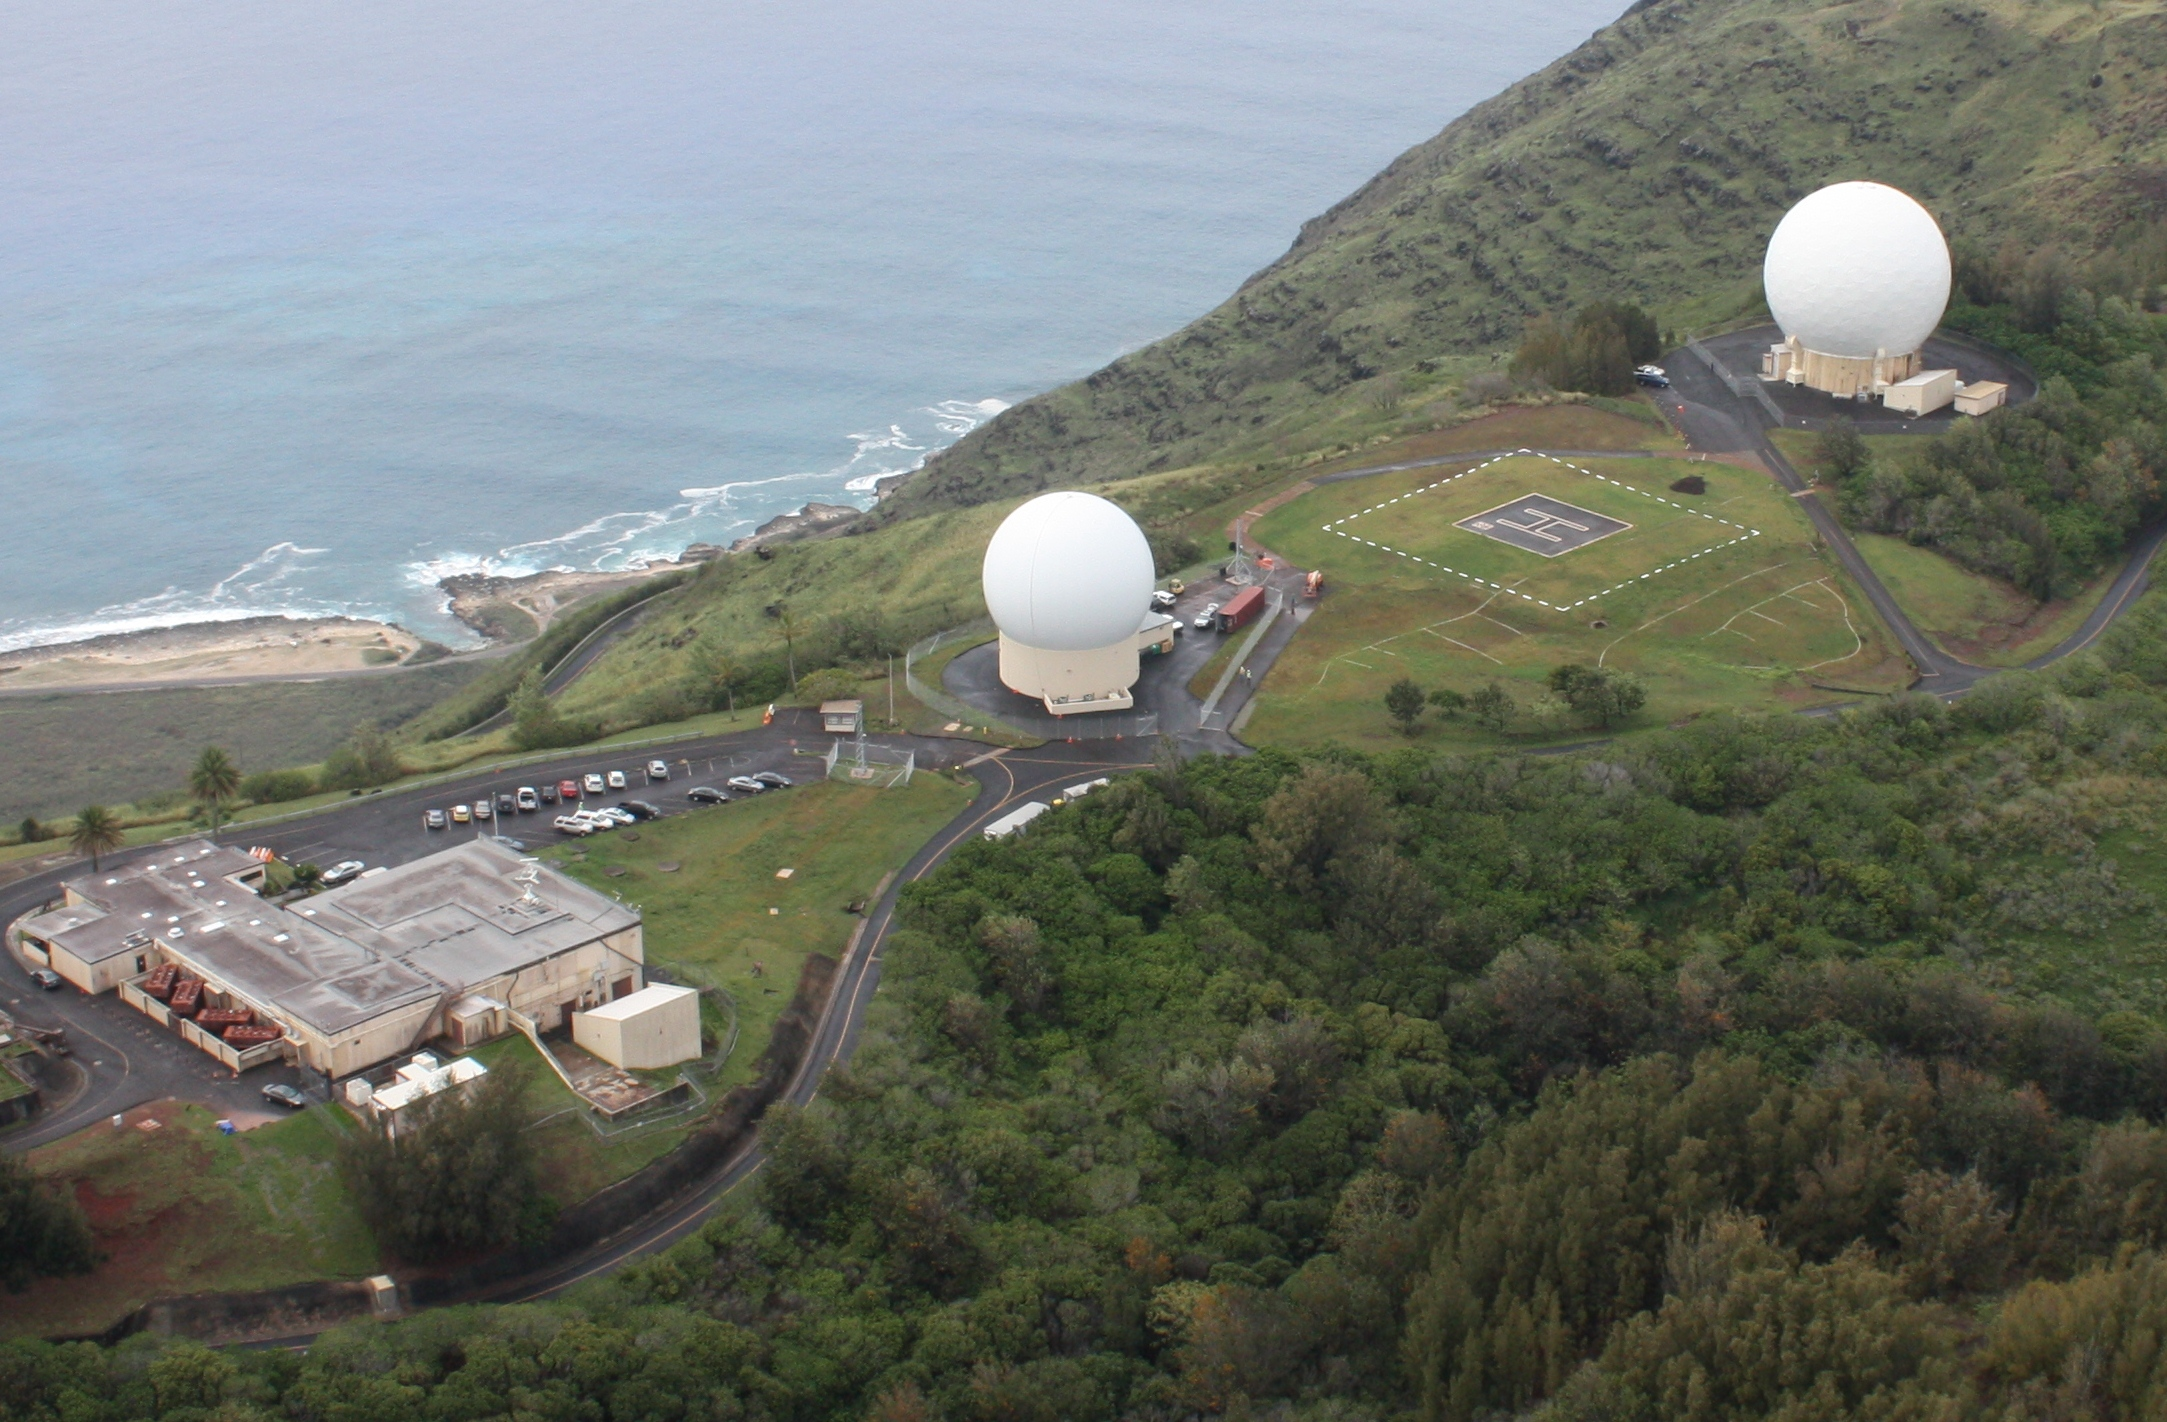 Intelsat General To Study Commercialization Of Satellite